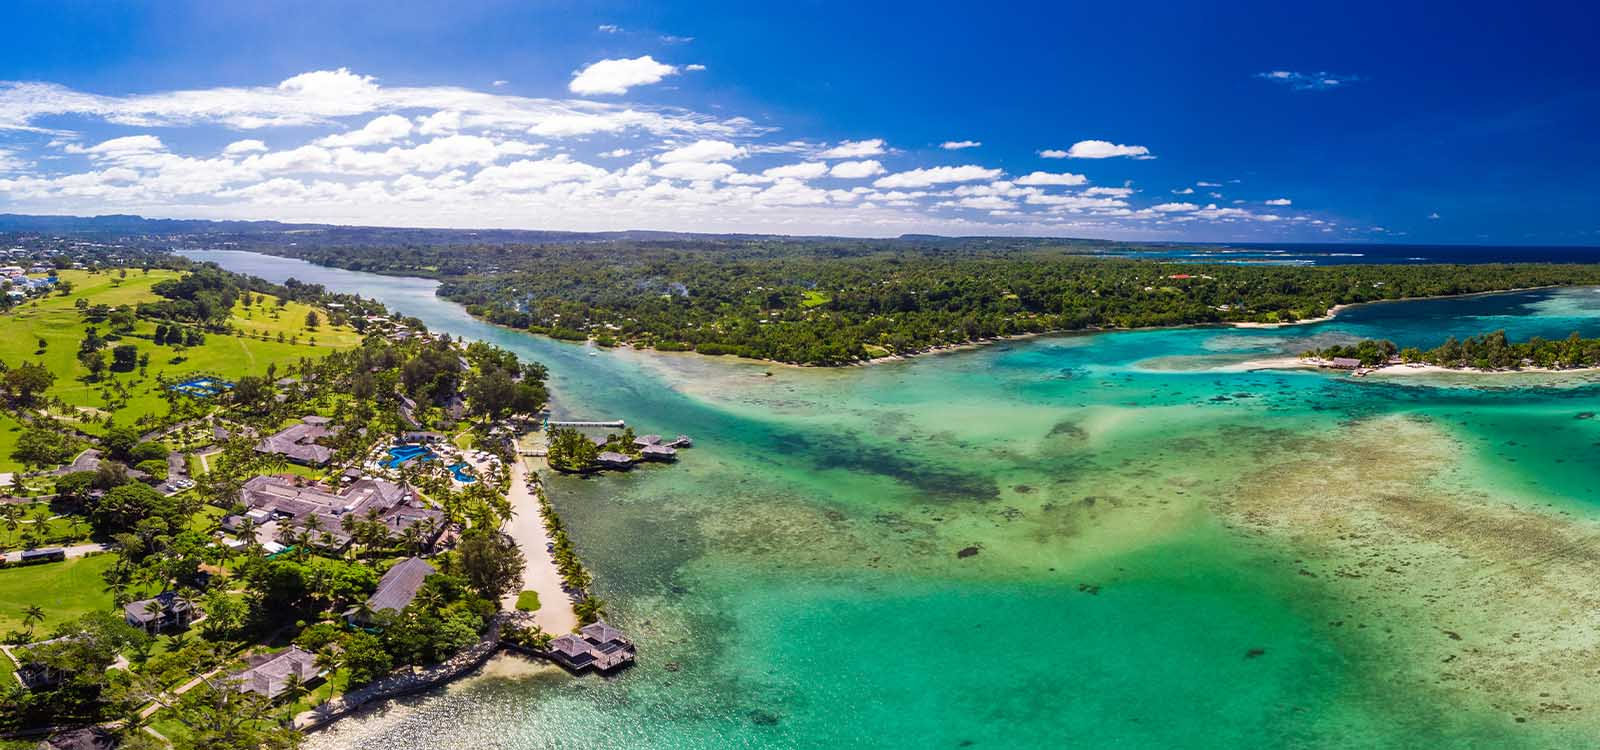 Vanuatu has no taxes on worldwide income, capital gains, dividends, gift, wealth and inheritance.